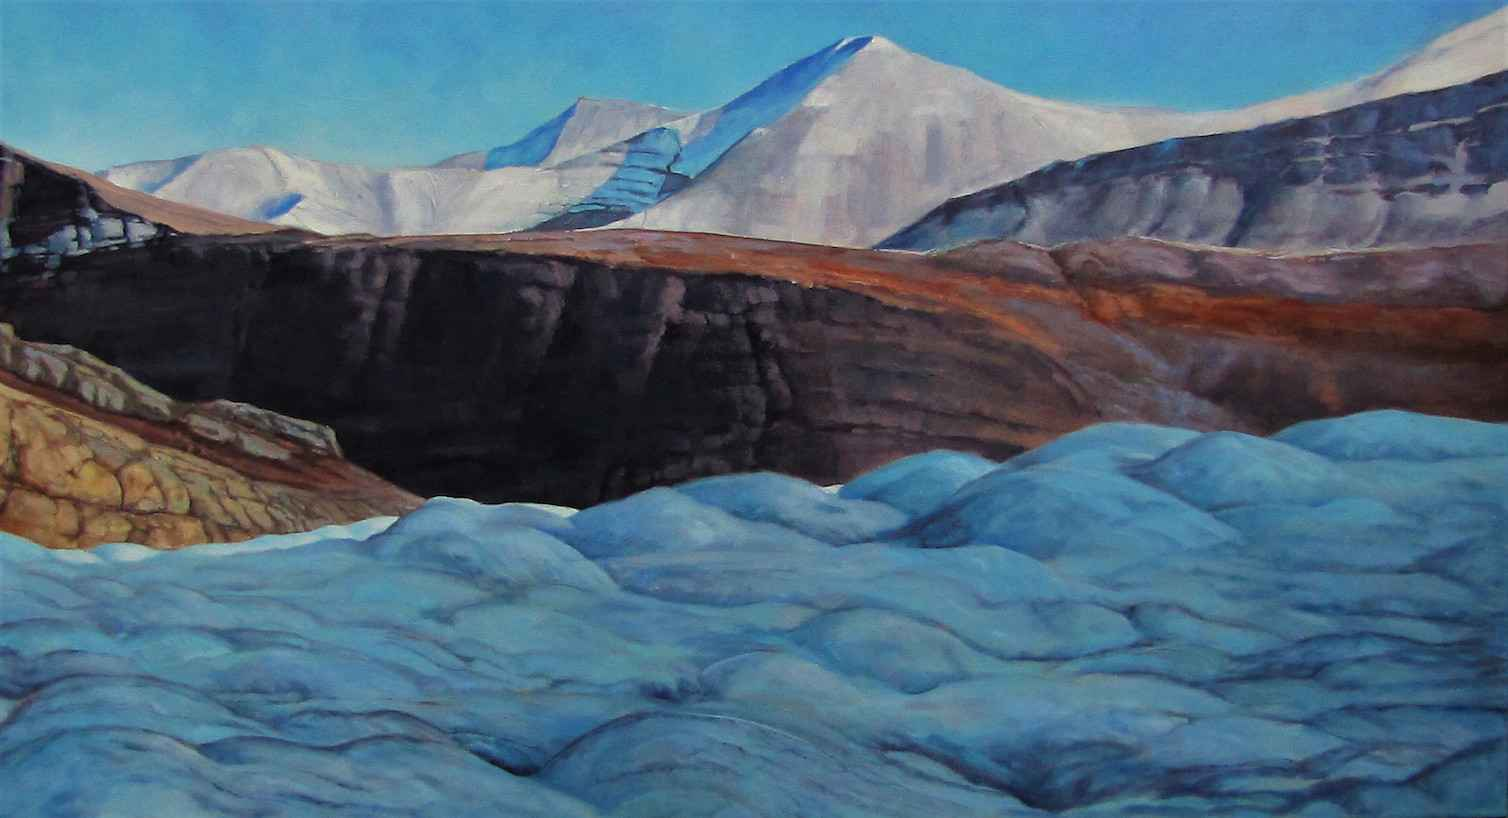 Top of the Glacier by  Carl Schlademan - Masterpiece Online